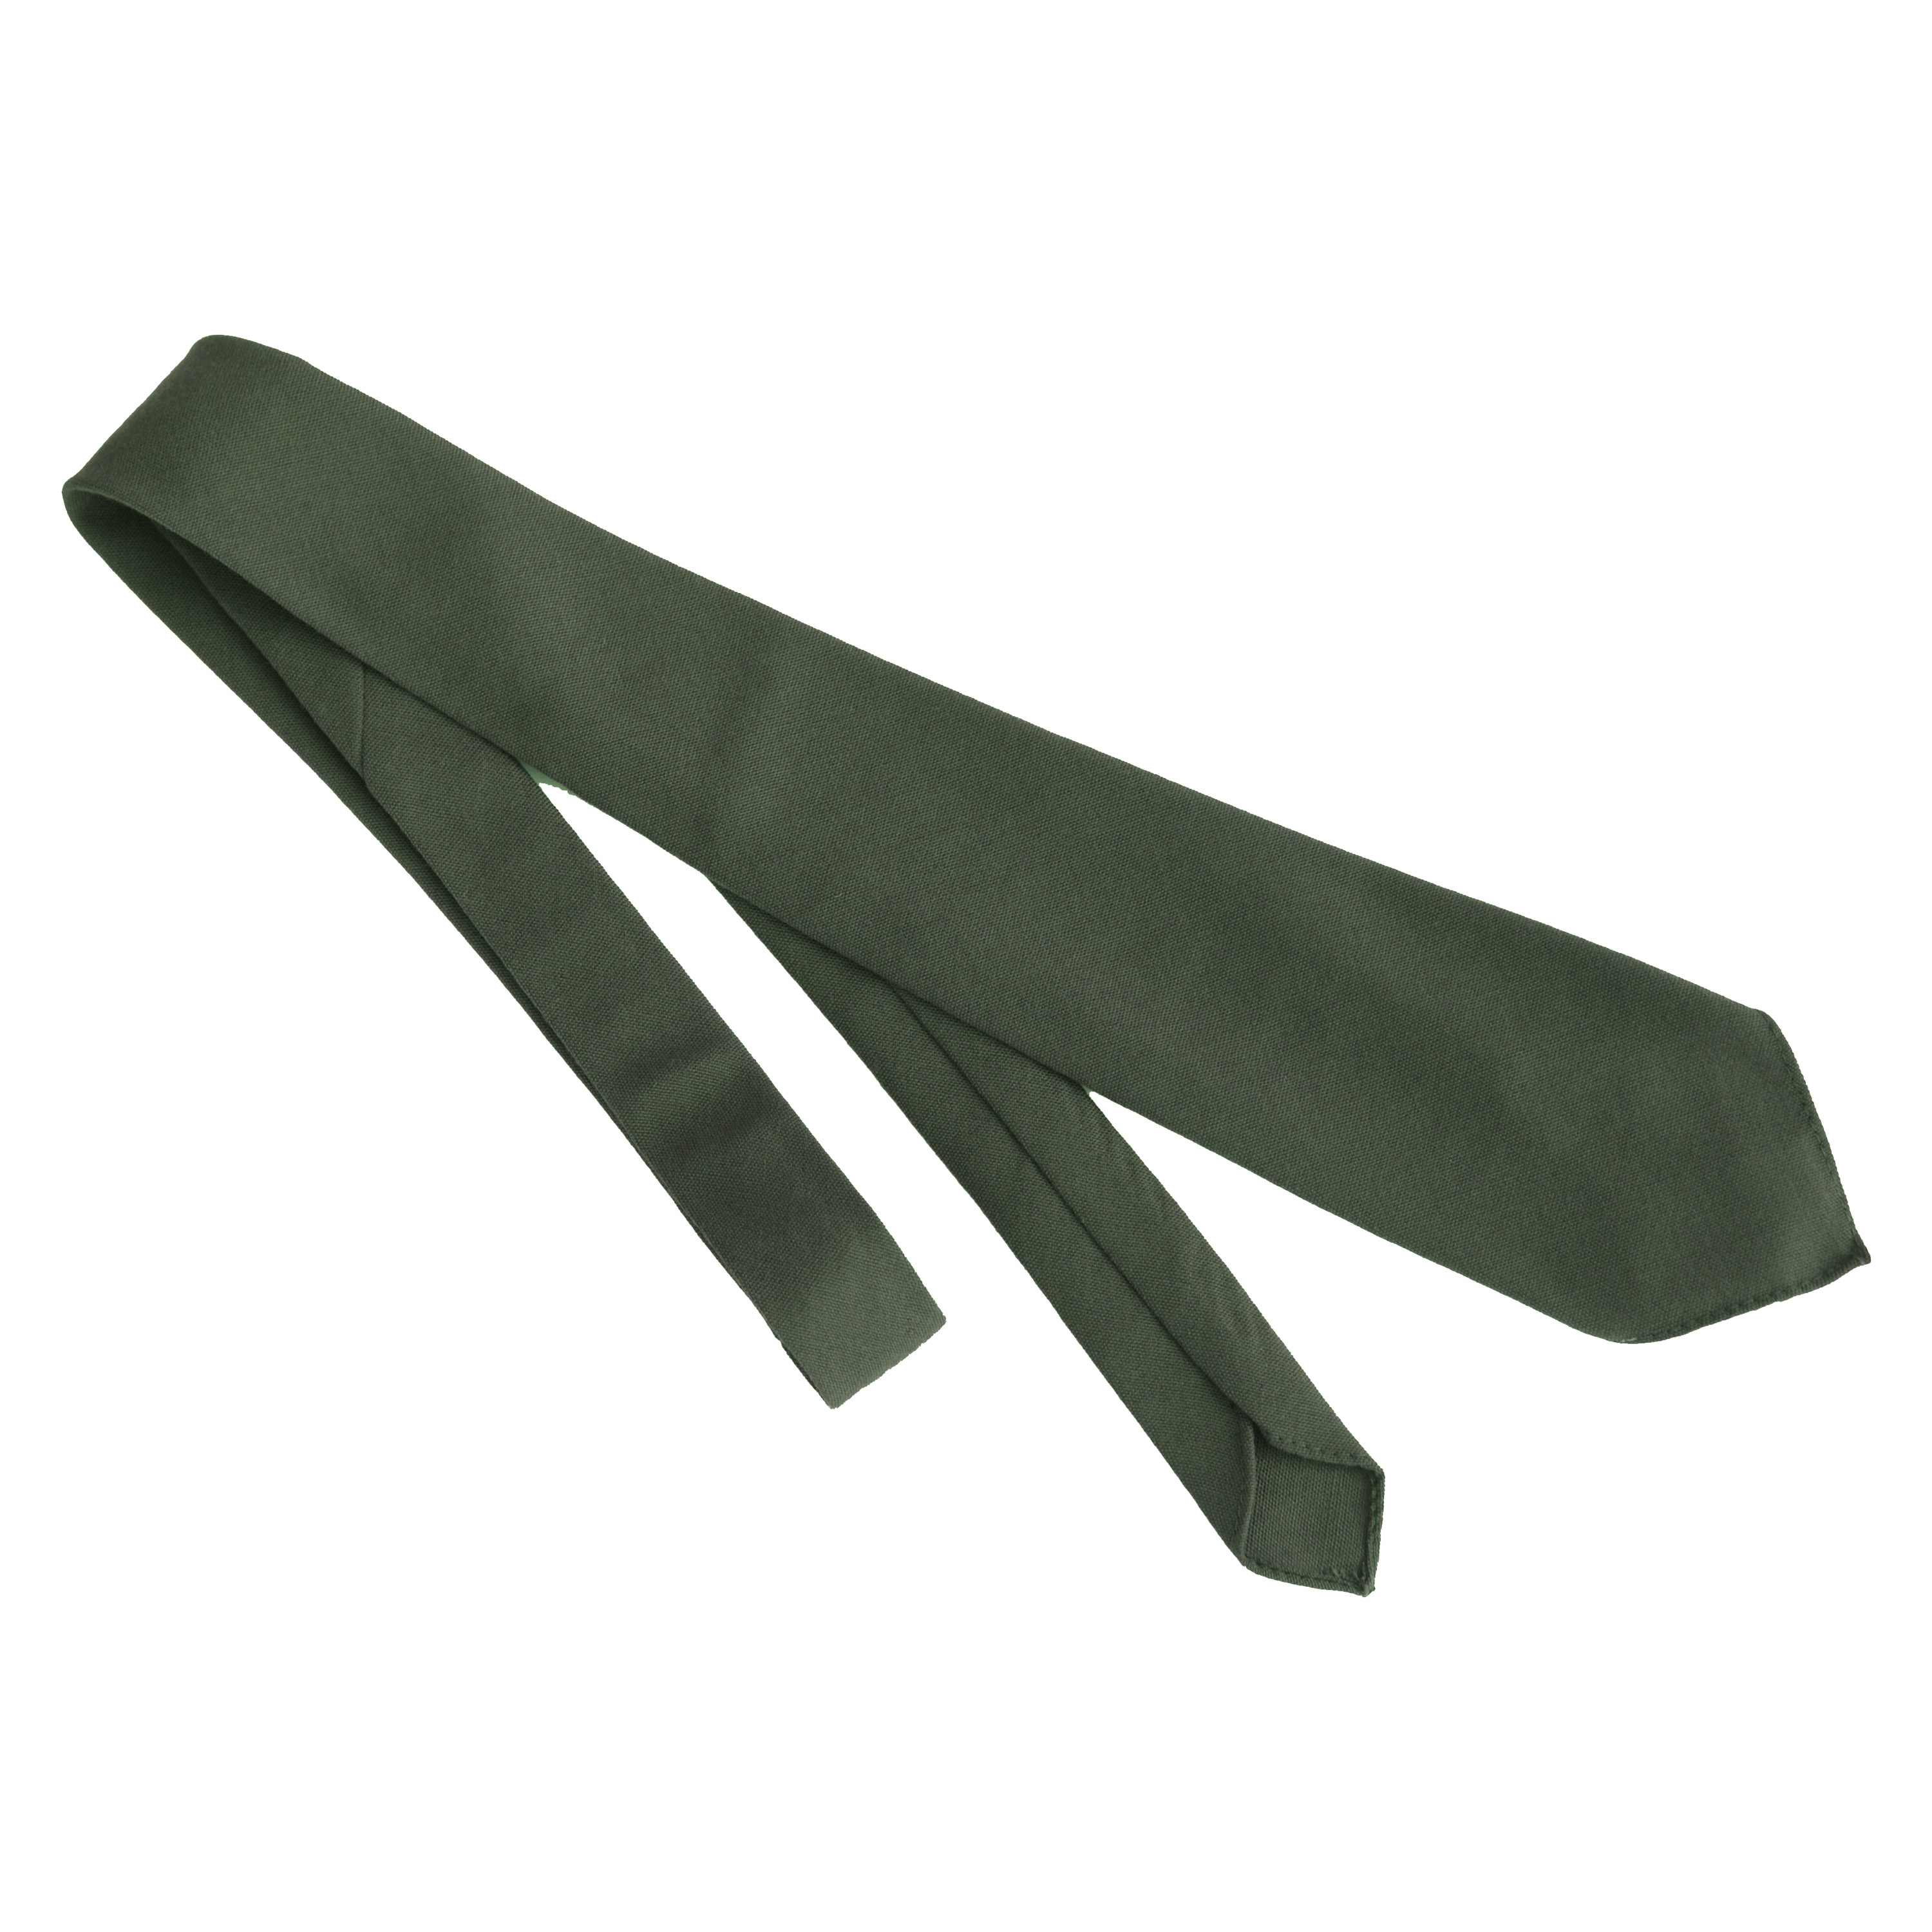 Austrian Armed Forces Necktie olive